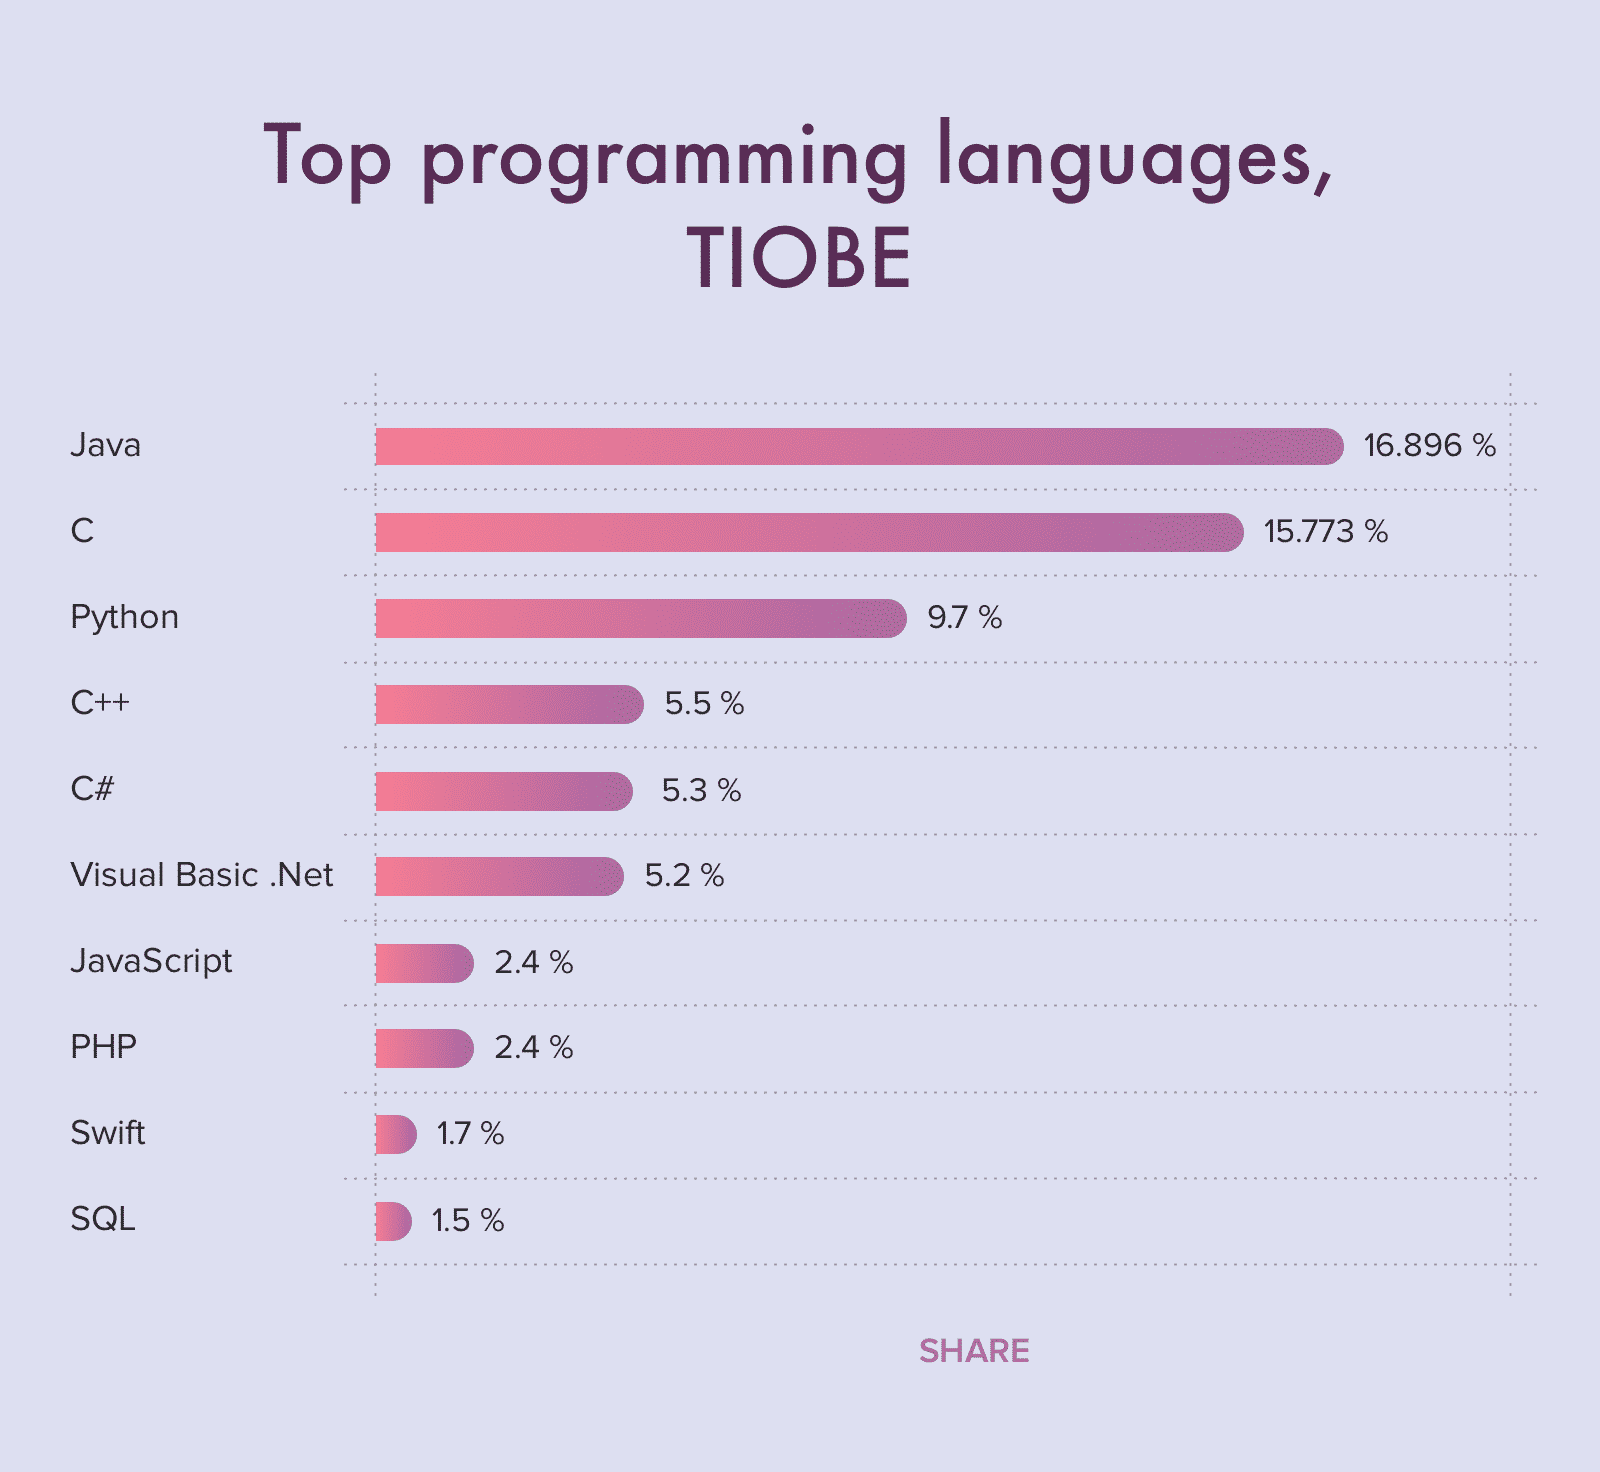 TIOBE index lists the top programming languages of 2020